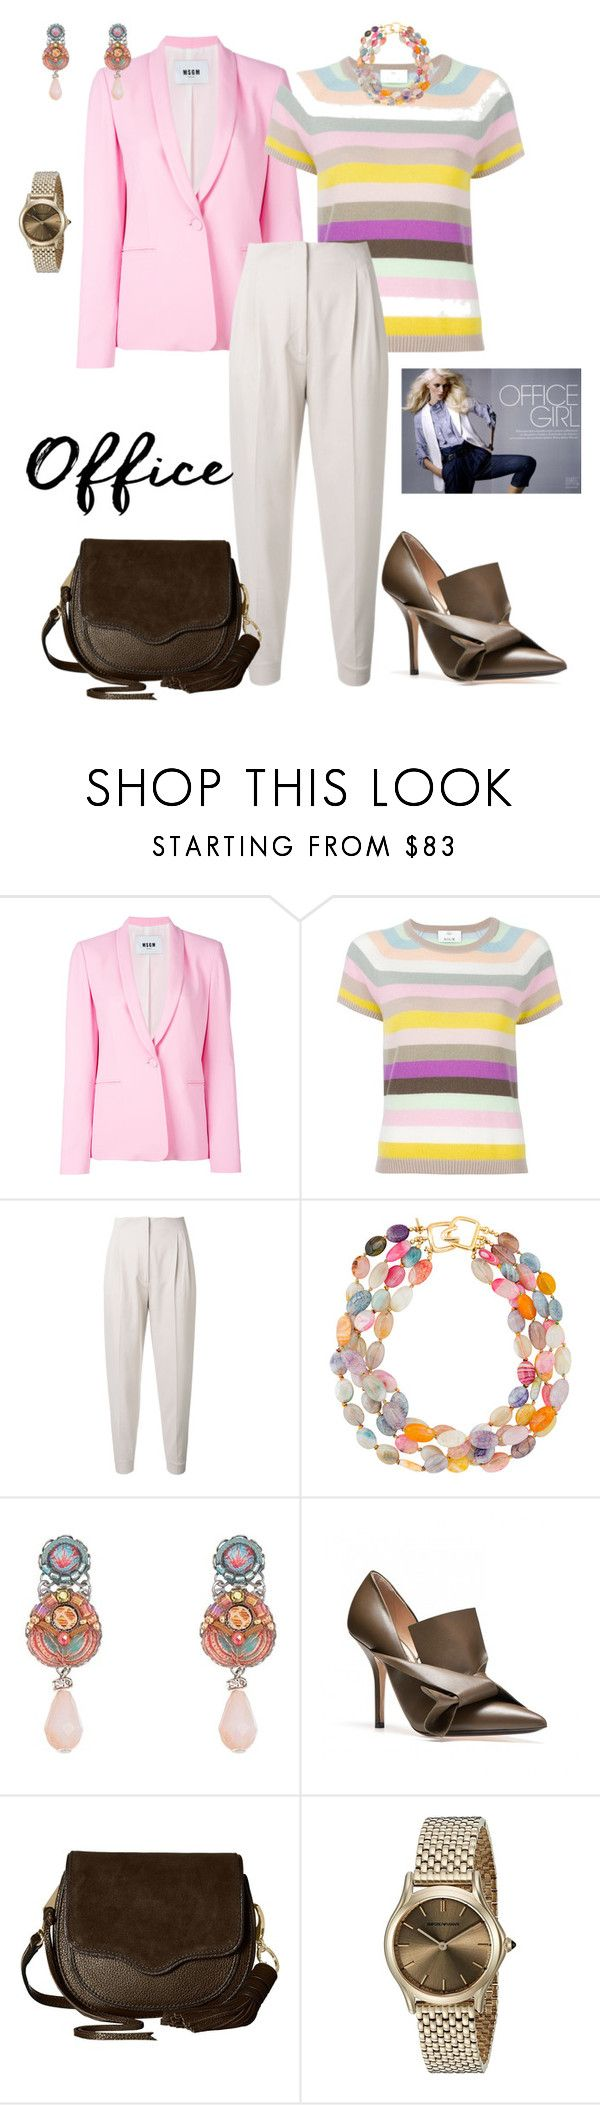 """""""Spring at the Office"""" by scope-stilettos ❤ liked on Polyvore featuring MSGM, Allude, MaxMara, Kenneth Jay Lane, Ayala Bar, Rebecca Minkoff and Emporio Armani"""